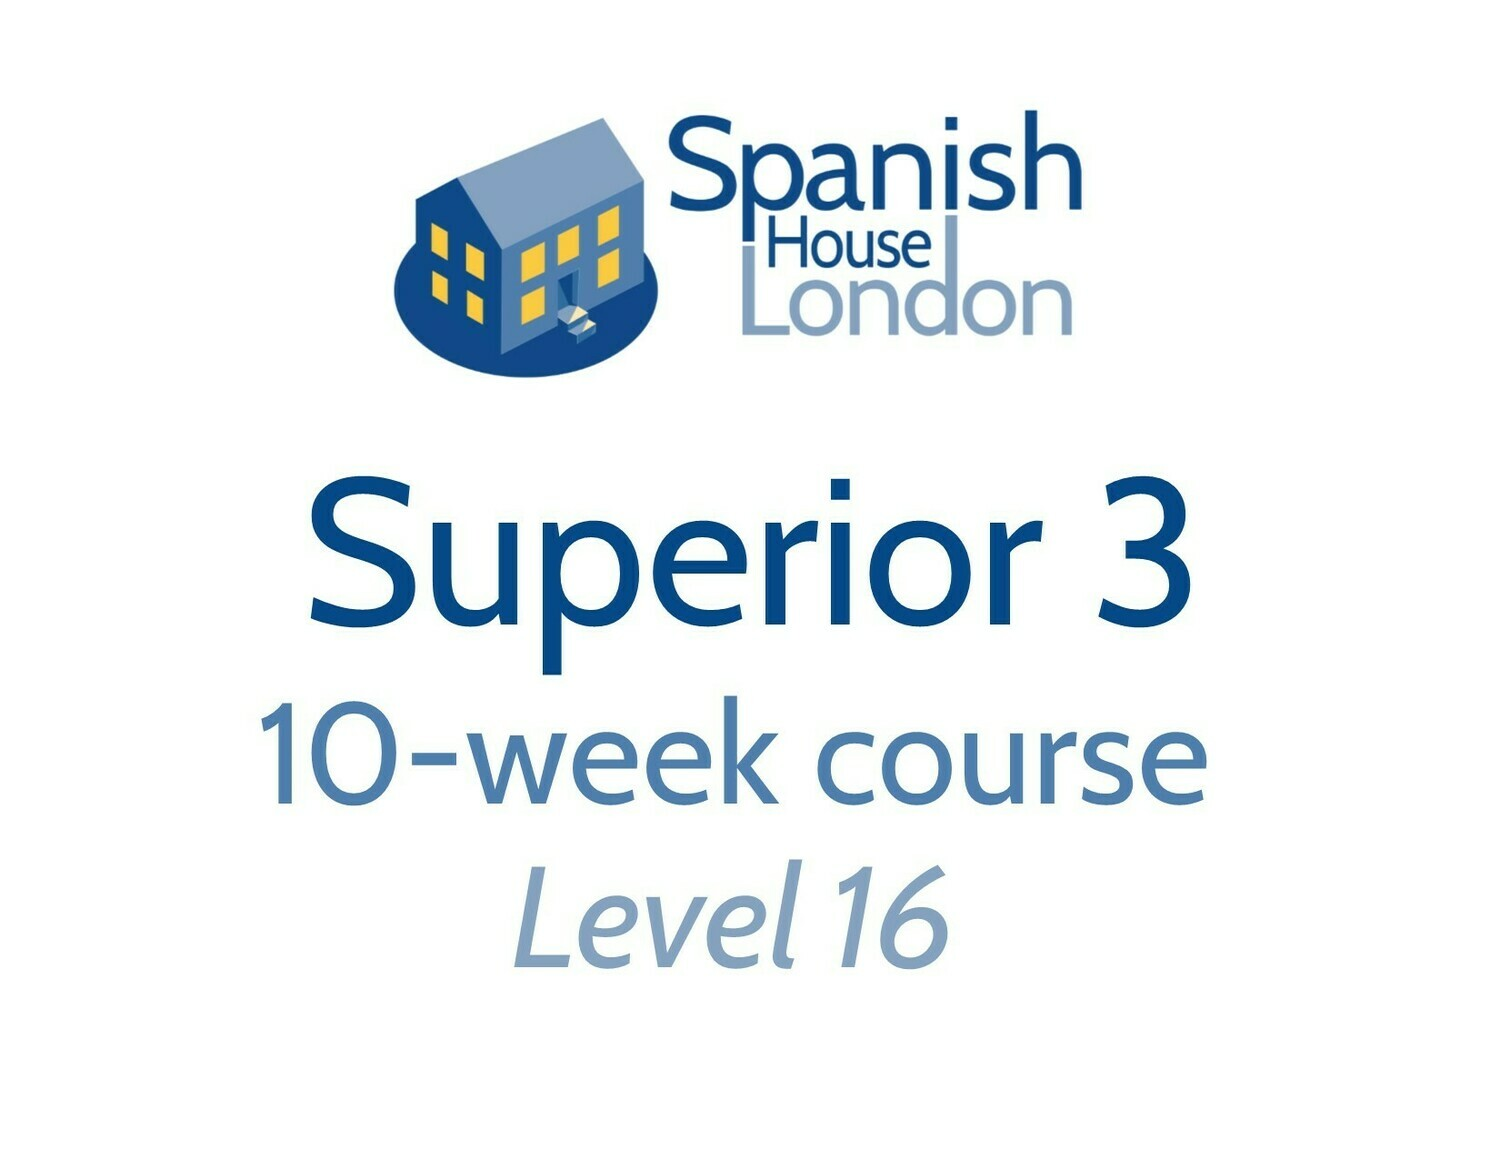 Superior 3 Course starting on 13th August at 7.30pm in Clapham North